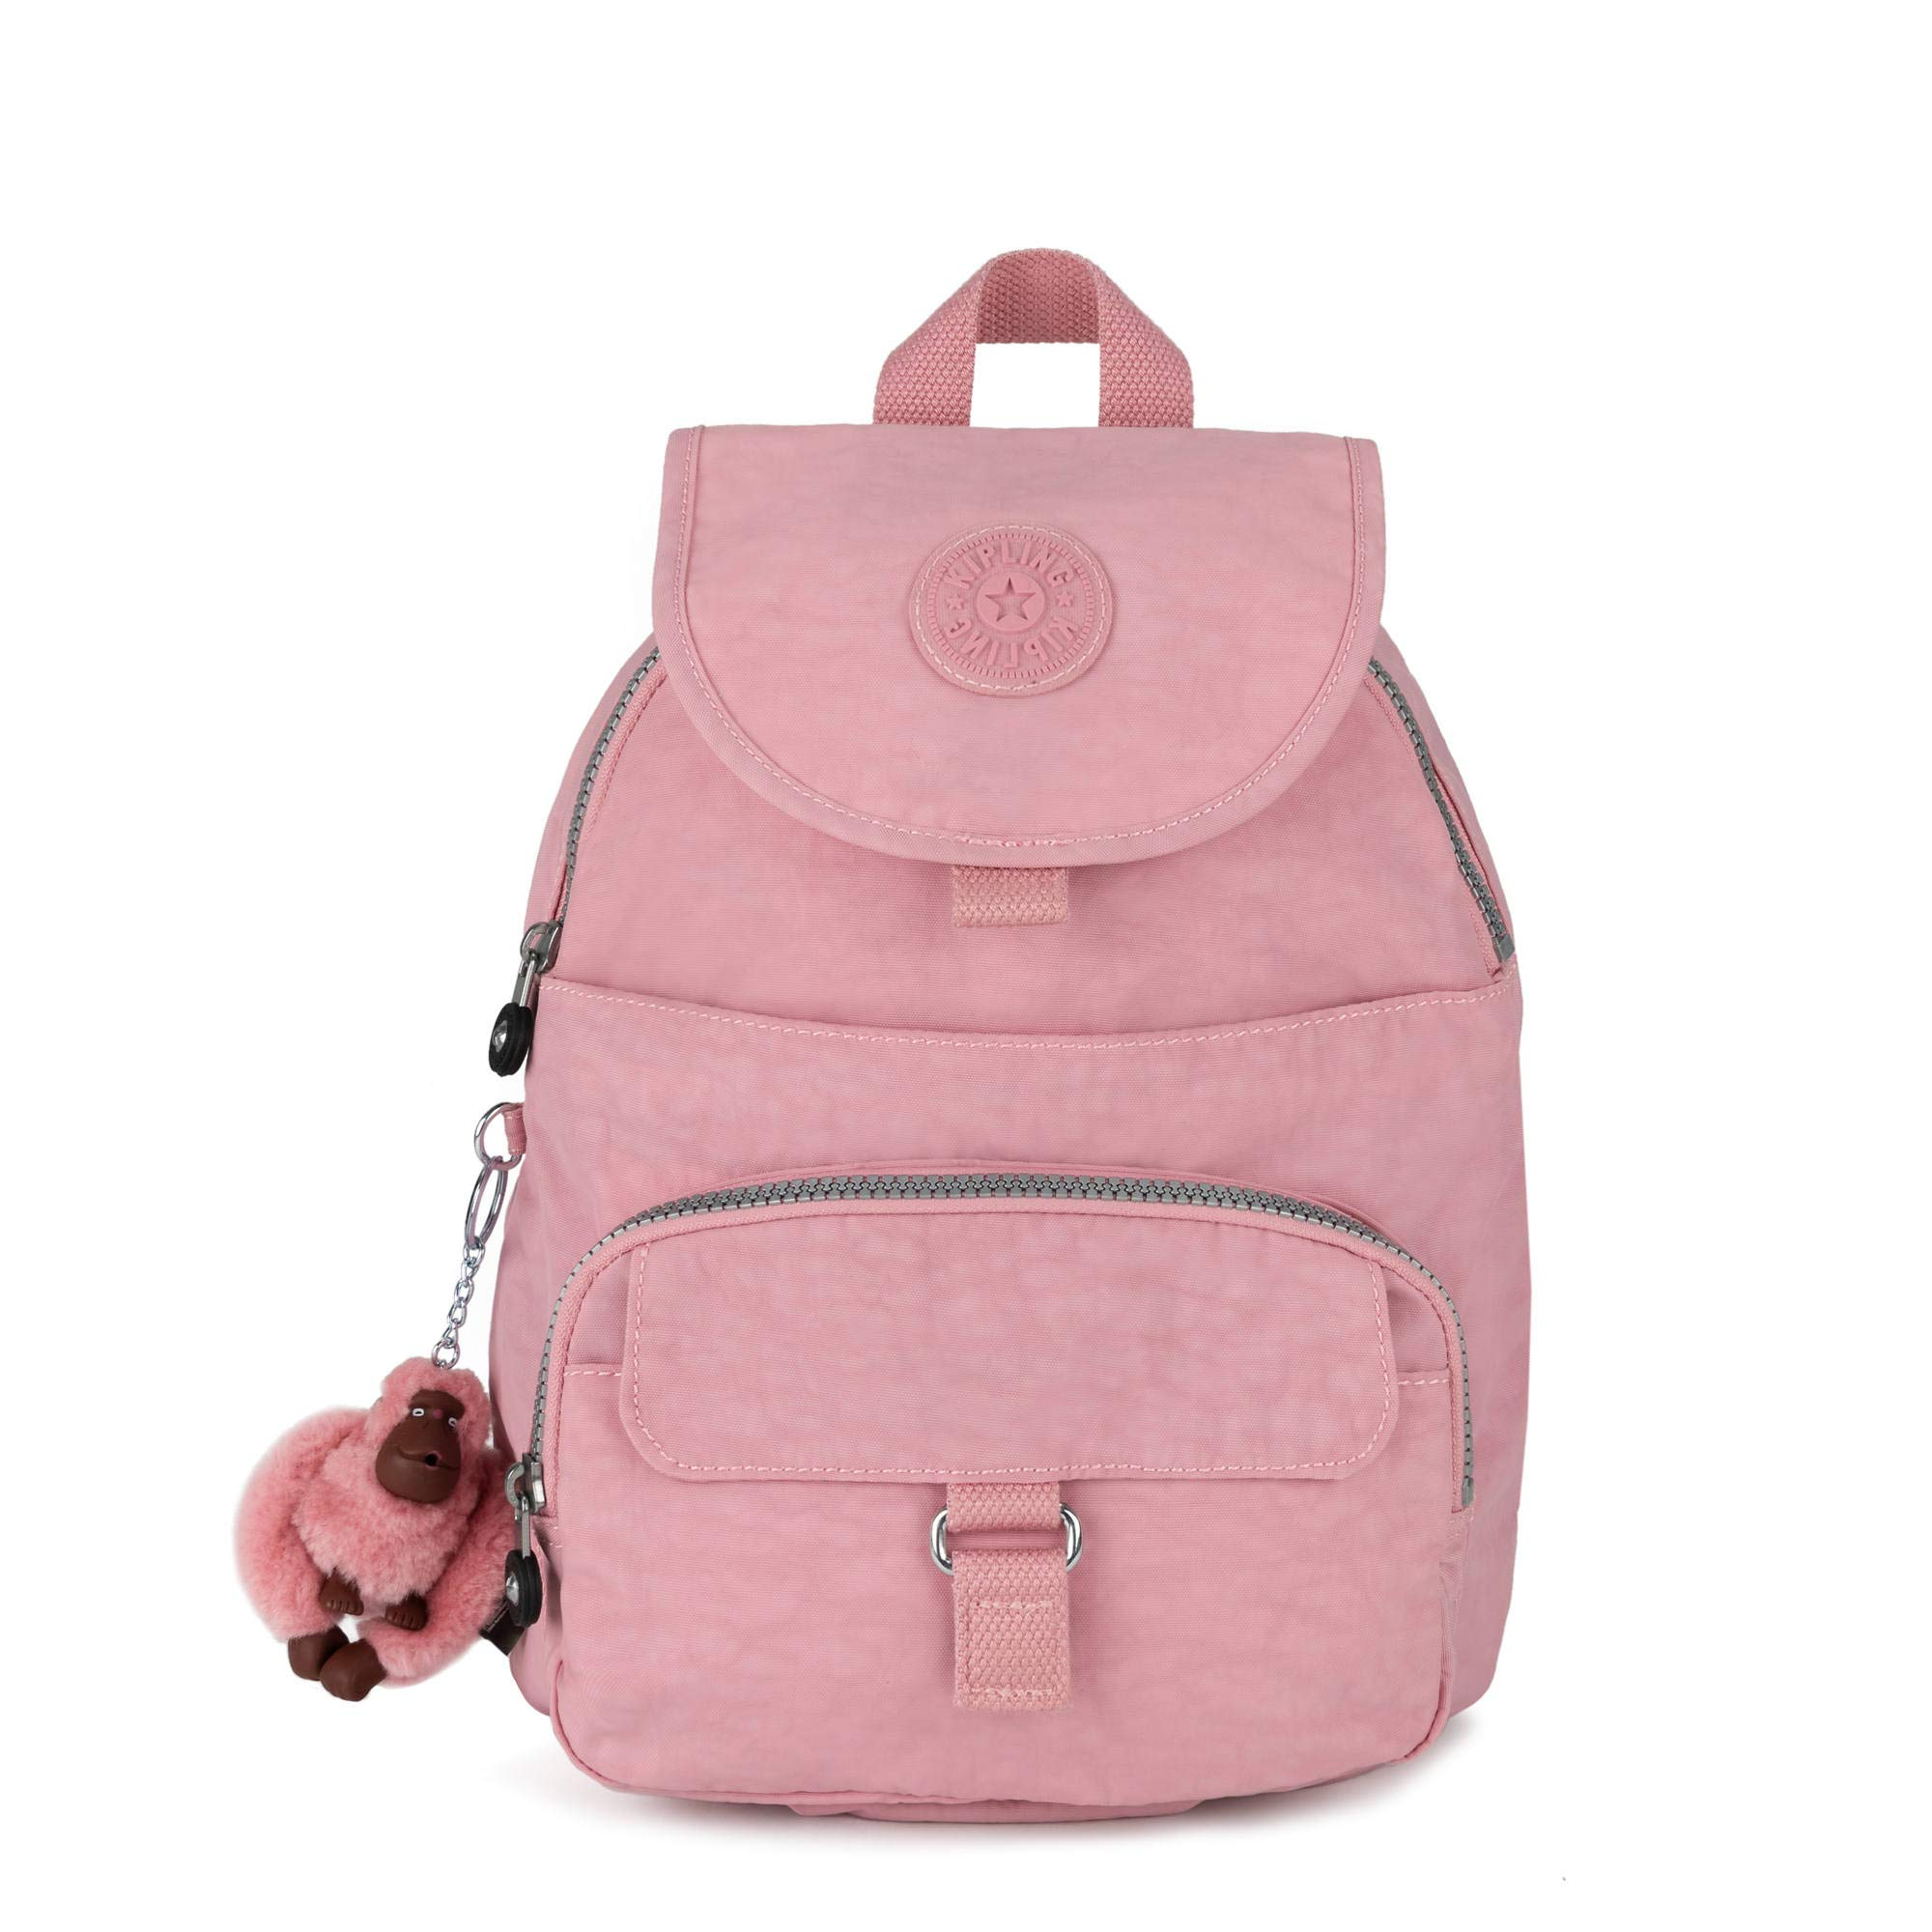 Kipling Queenie Small Backpack One Size Strawberry Pink